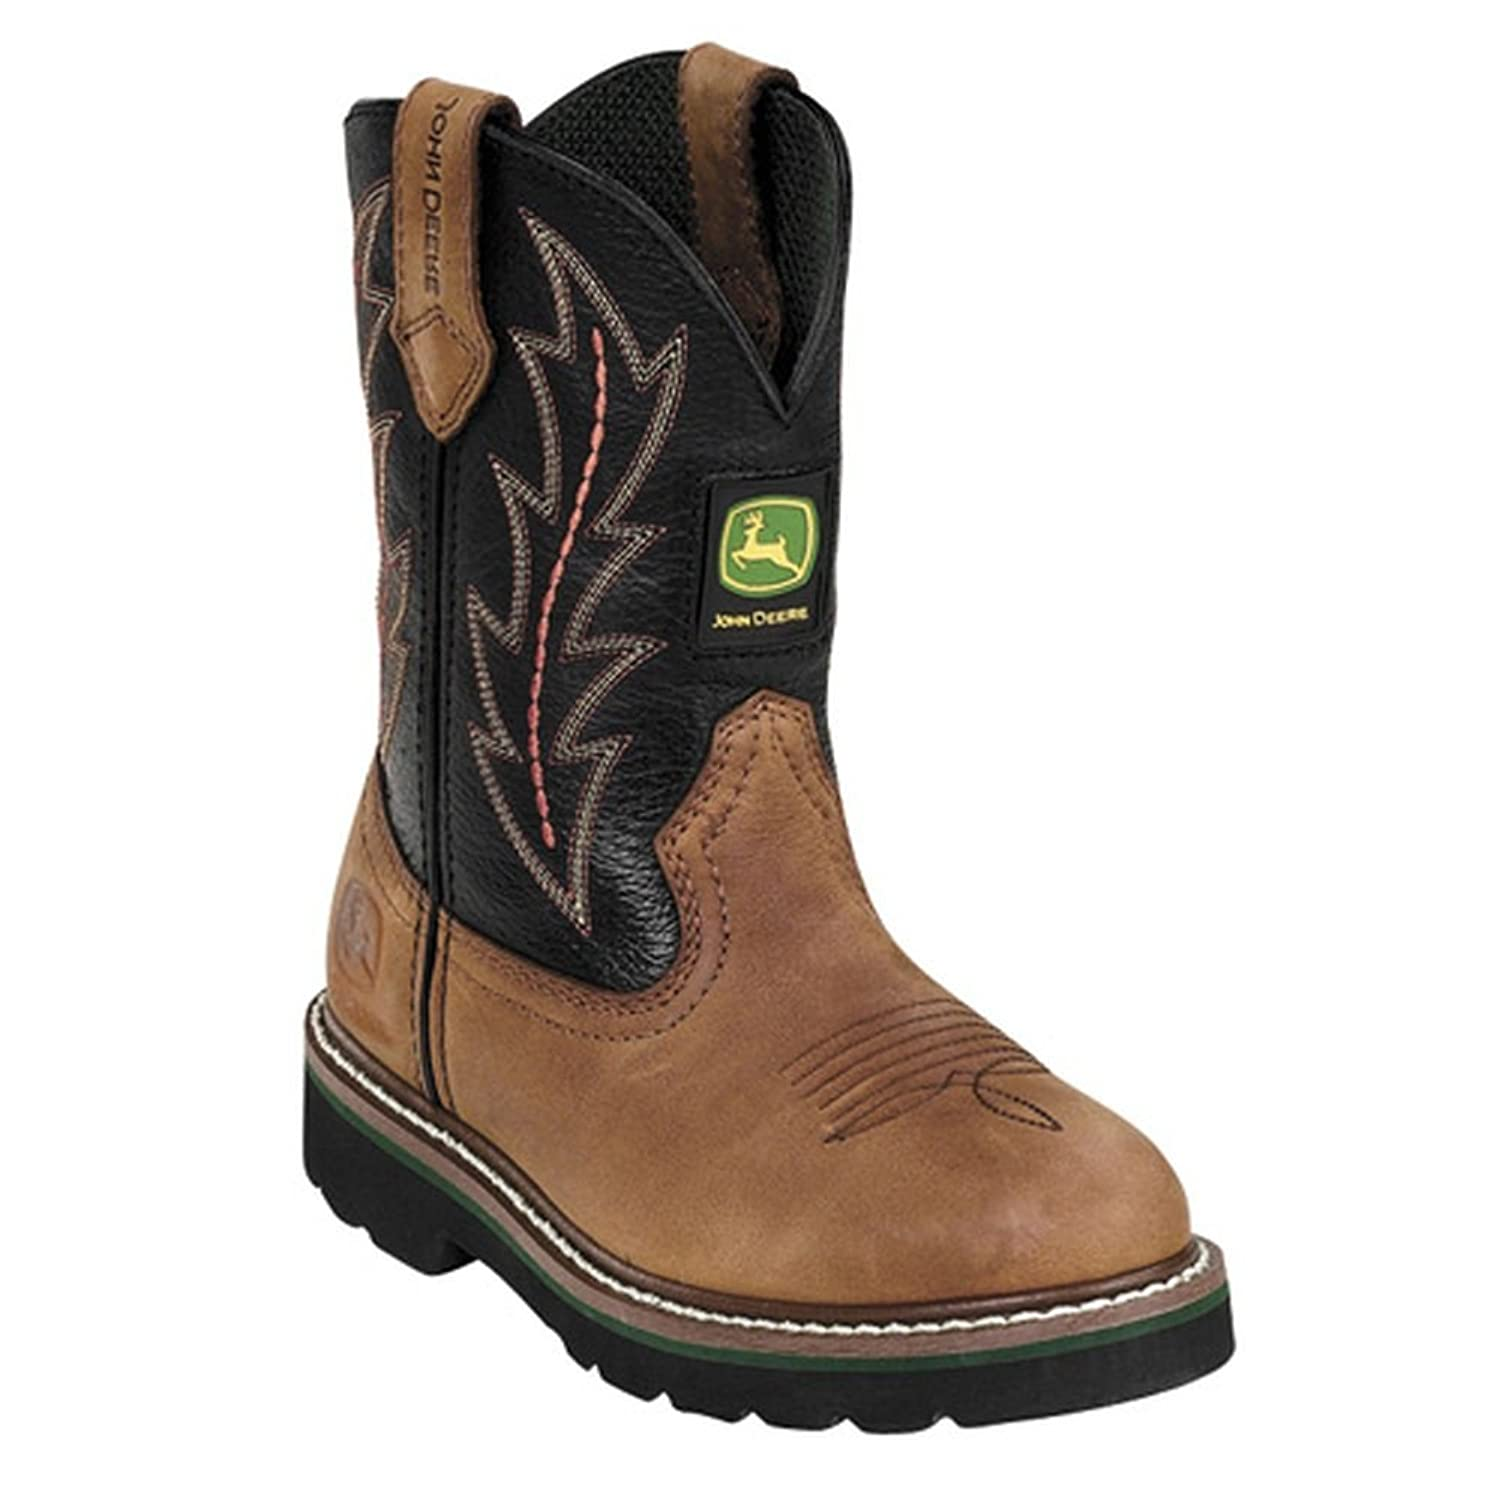 John Deere 1190 Western Boot (Toddler): Toddler Work Boots For Boys